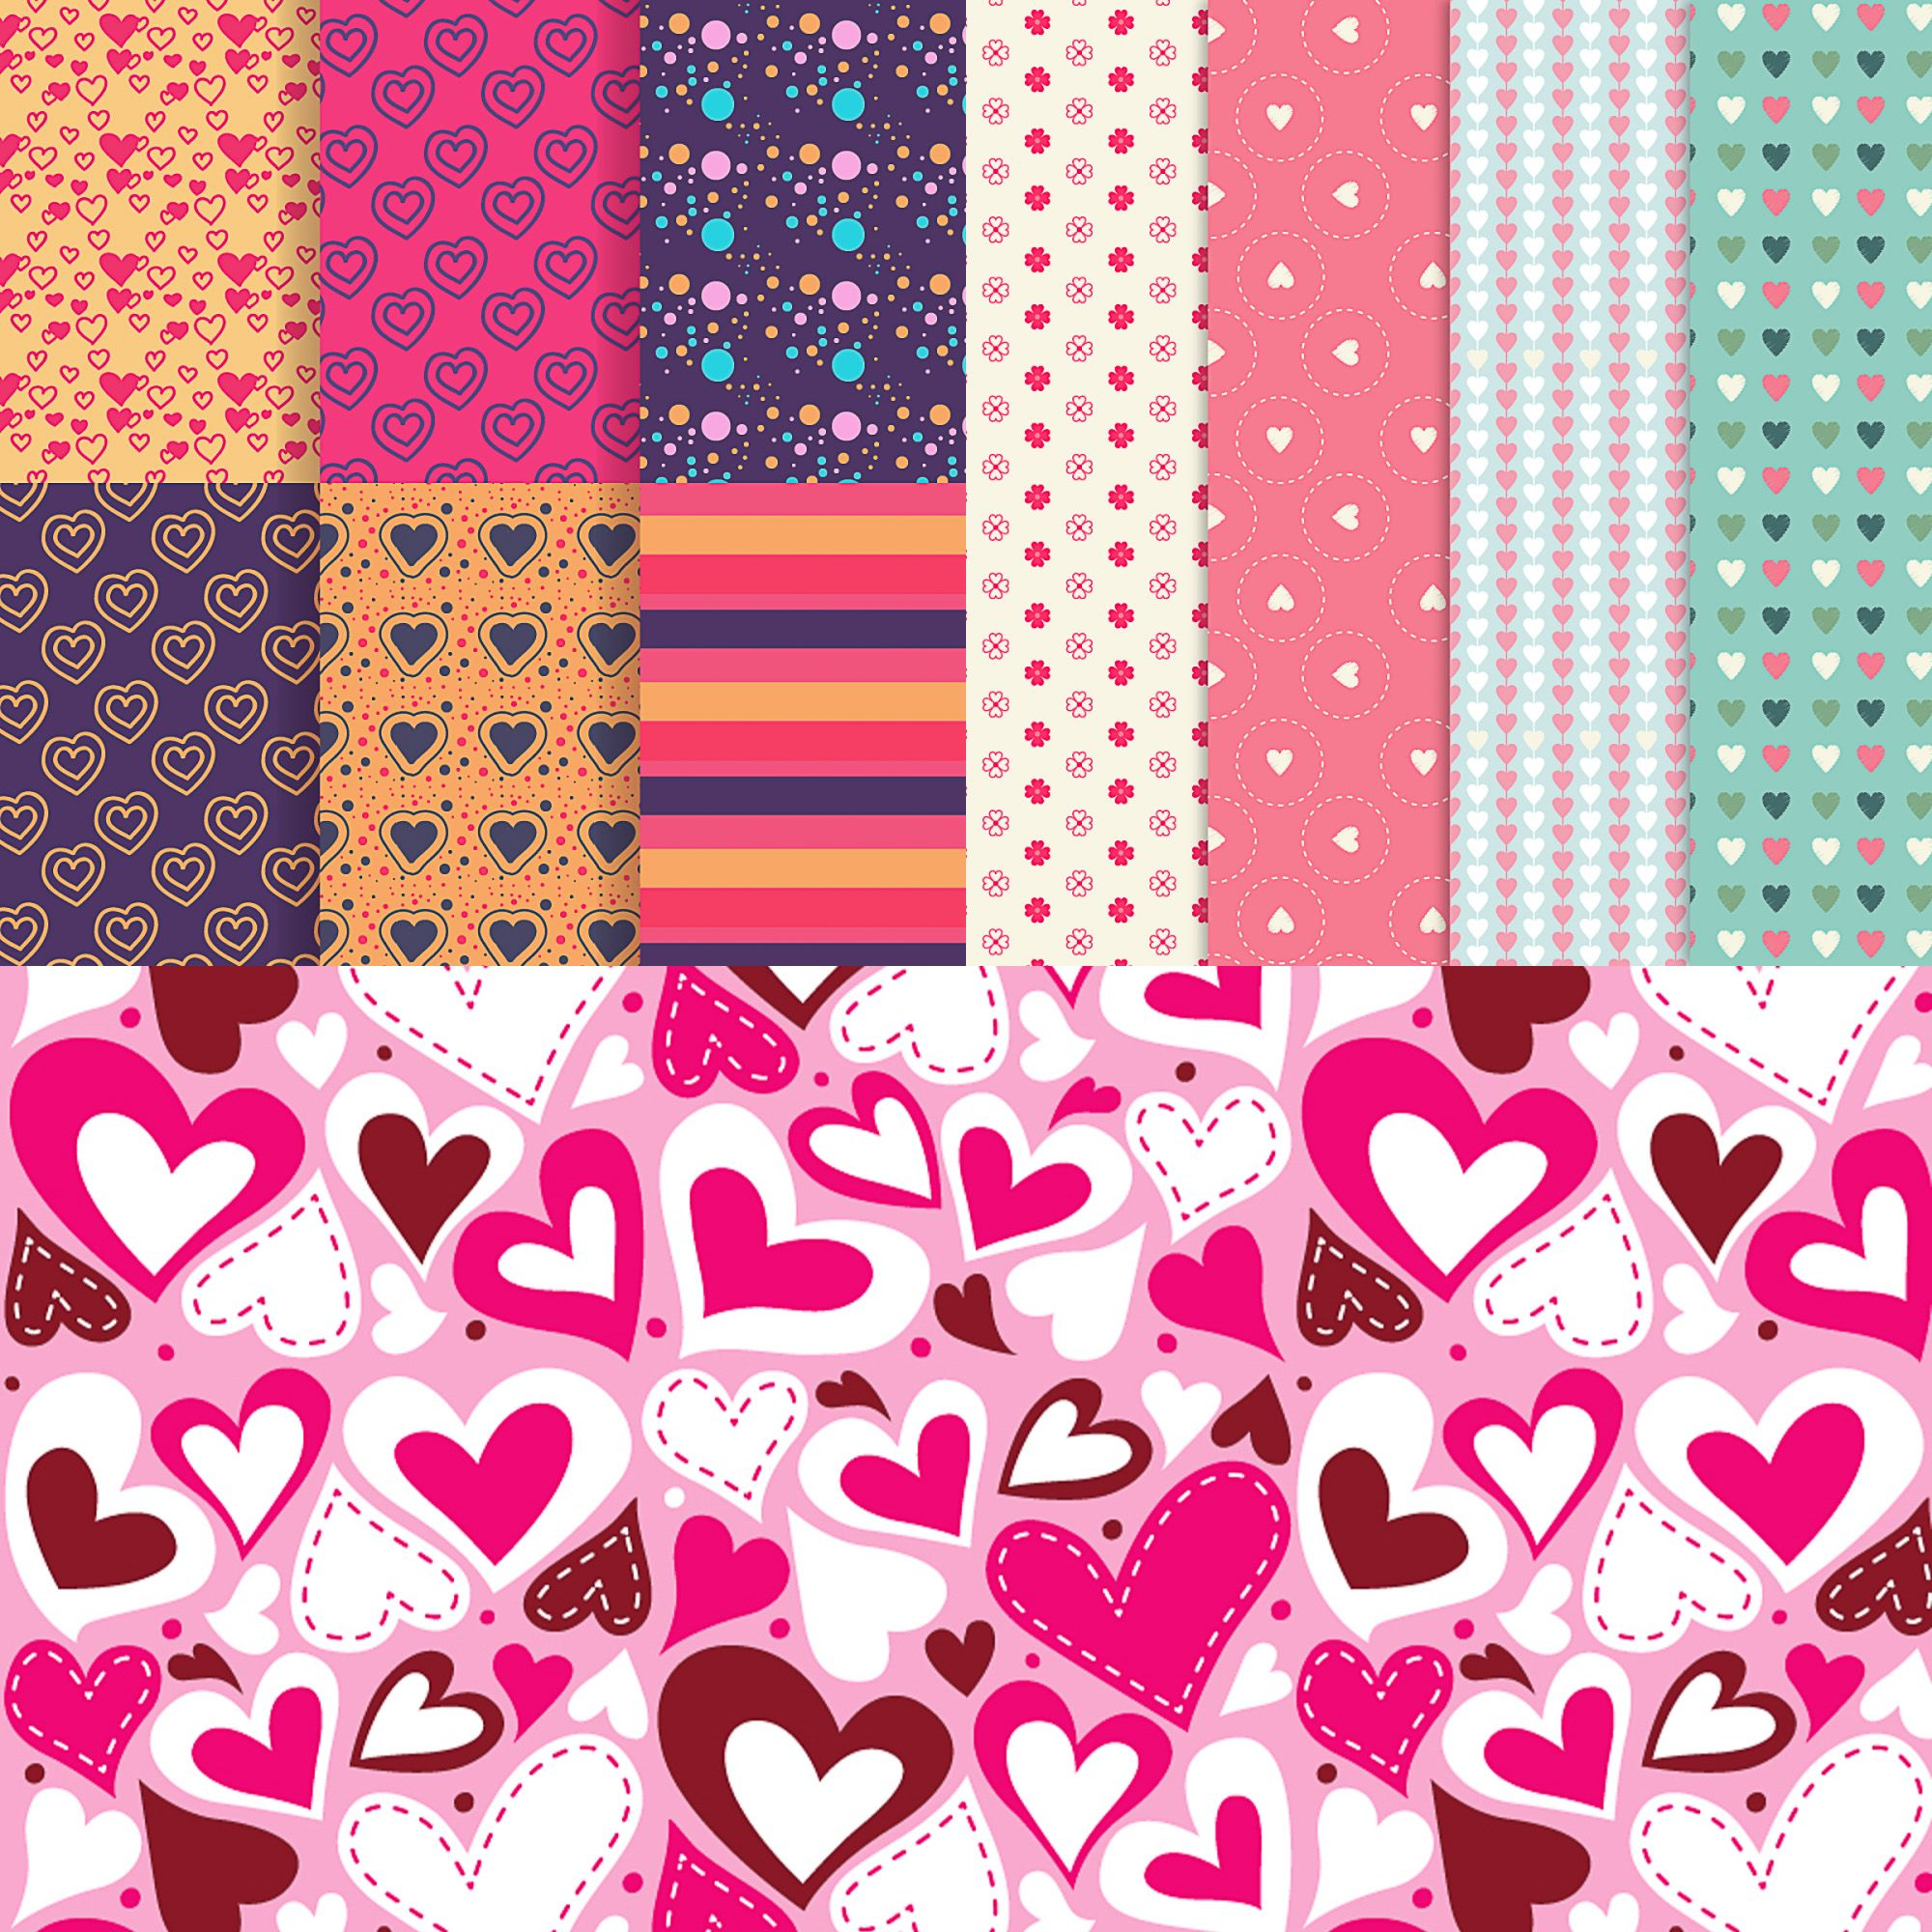 Set of 11 patterns templates for valentine and greeting cards and set of 11 patterns templates for valentine and greeting cards and your valentines day designs kristyandbryce Gallery